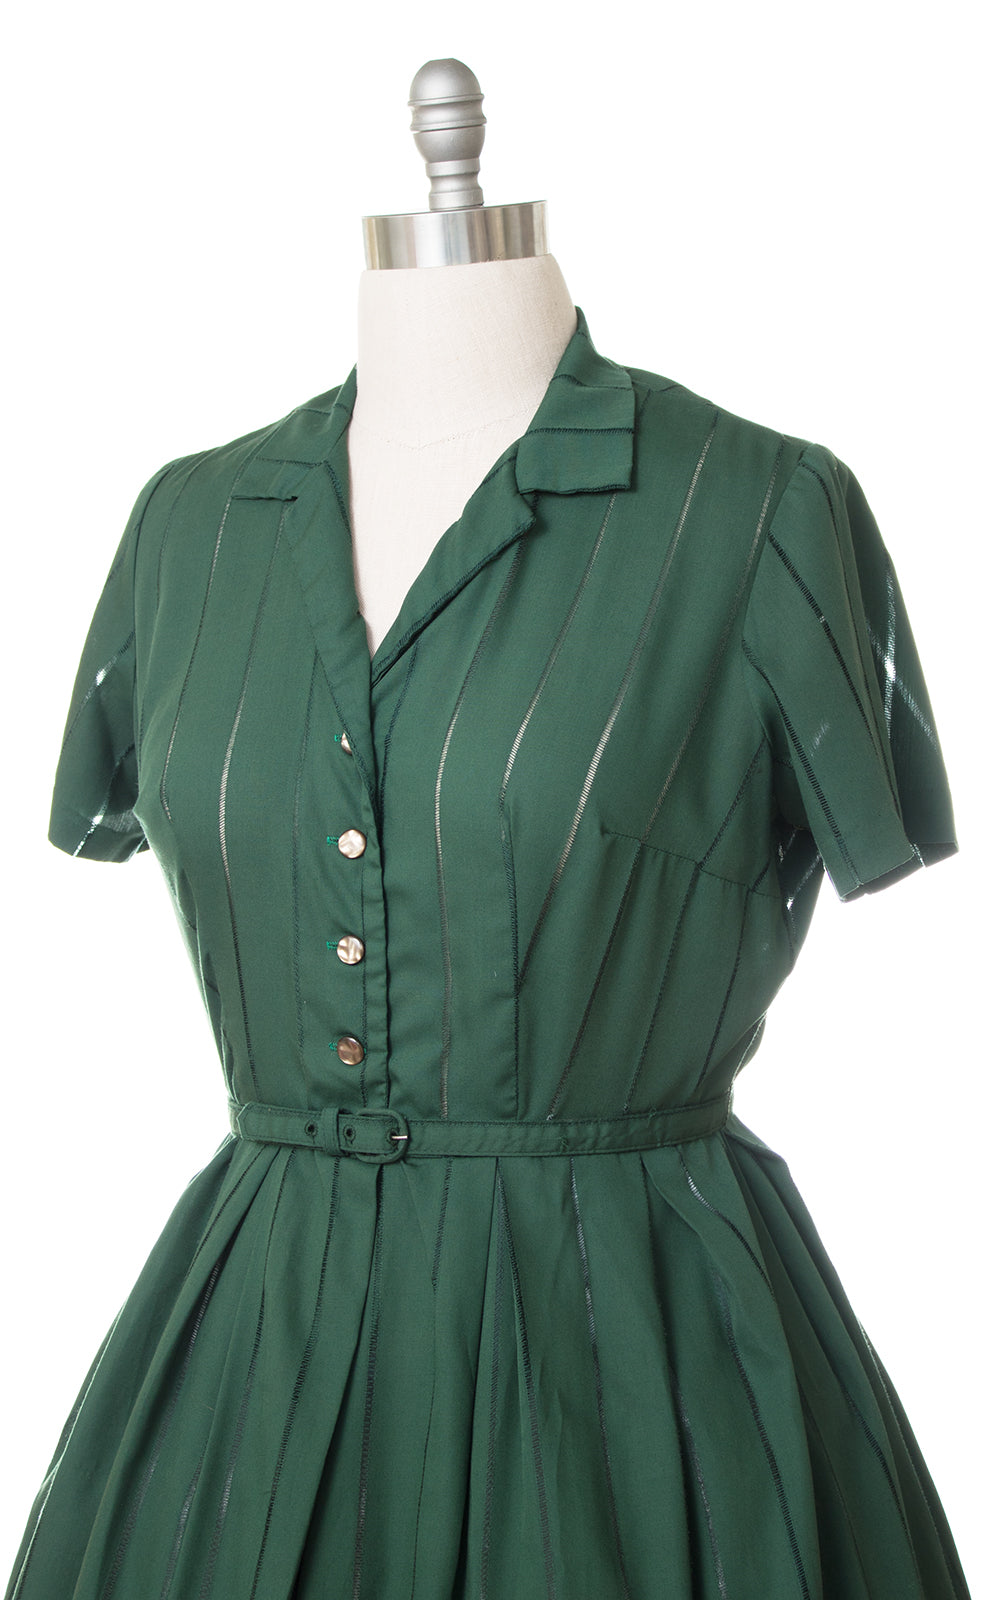 1950s Forest Green Cotton Shirtwaist Dress (x-large)